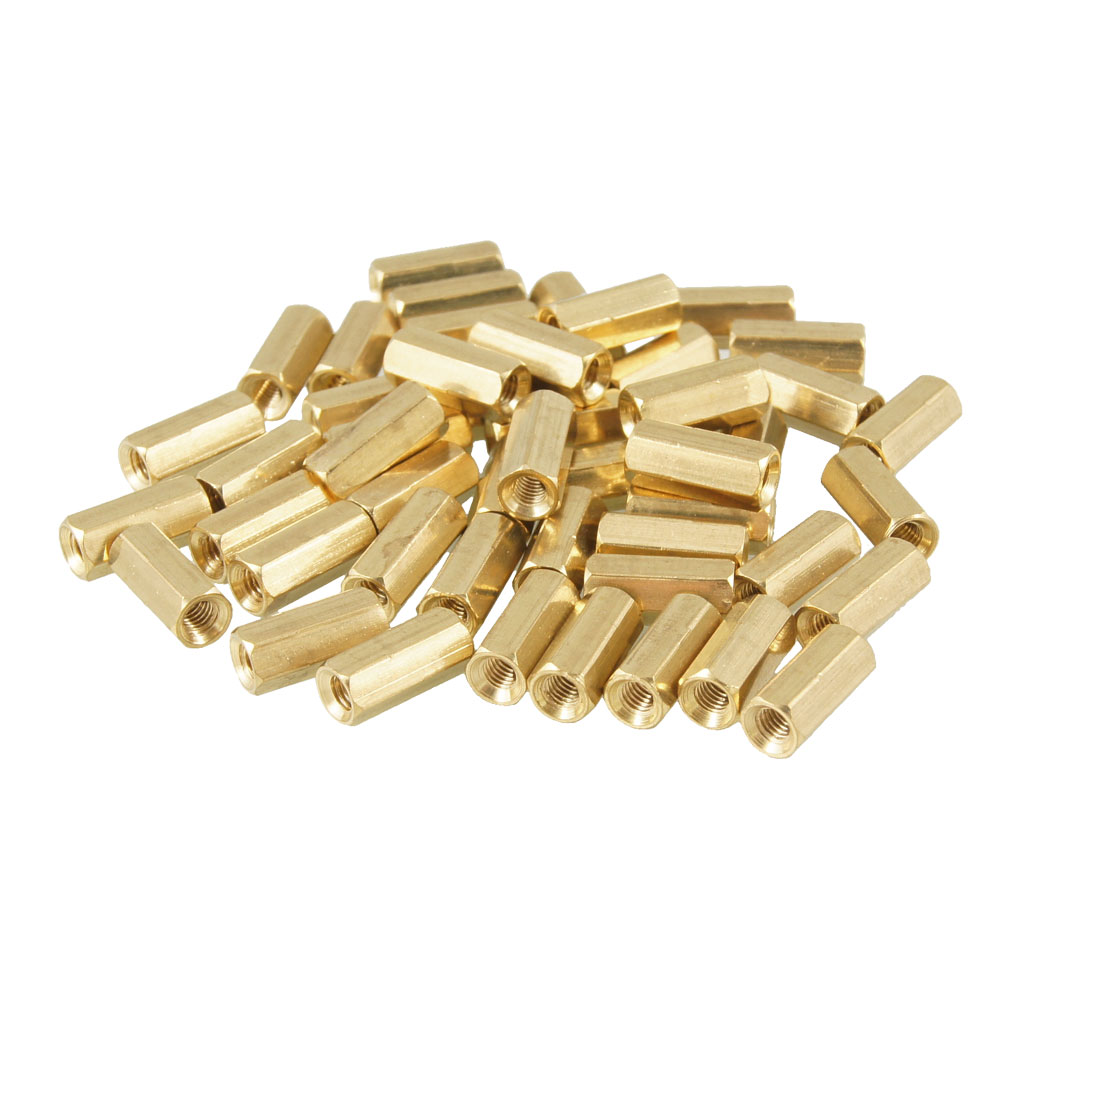 50 Pcs 3mm Female Screw Hexagonal Stand Off Spacers 10mm Length